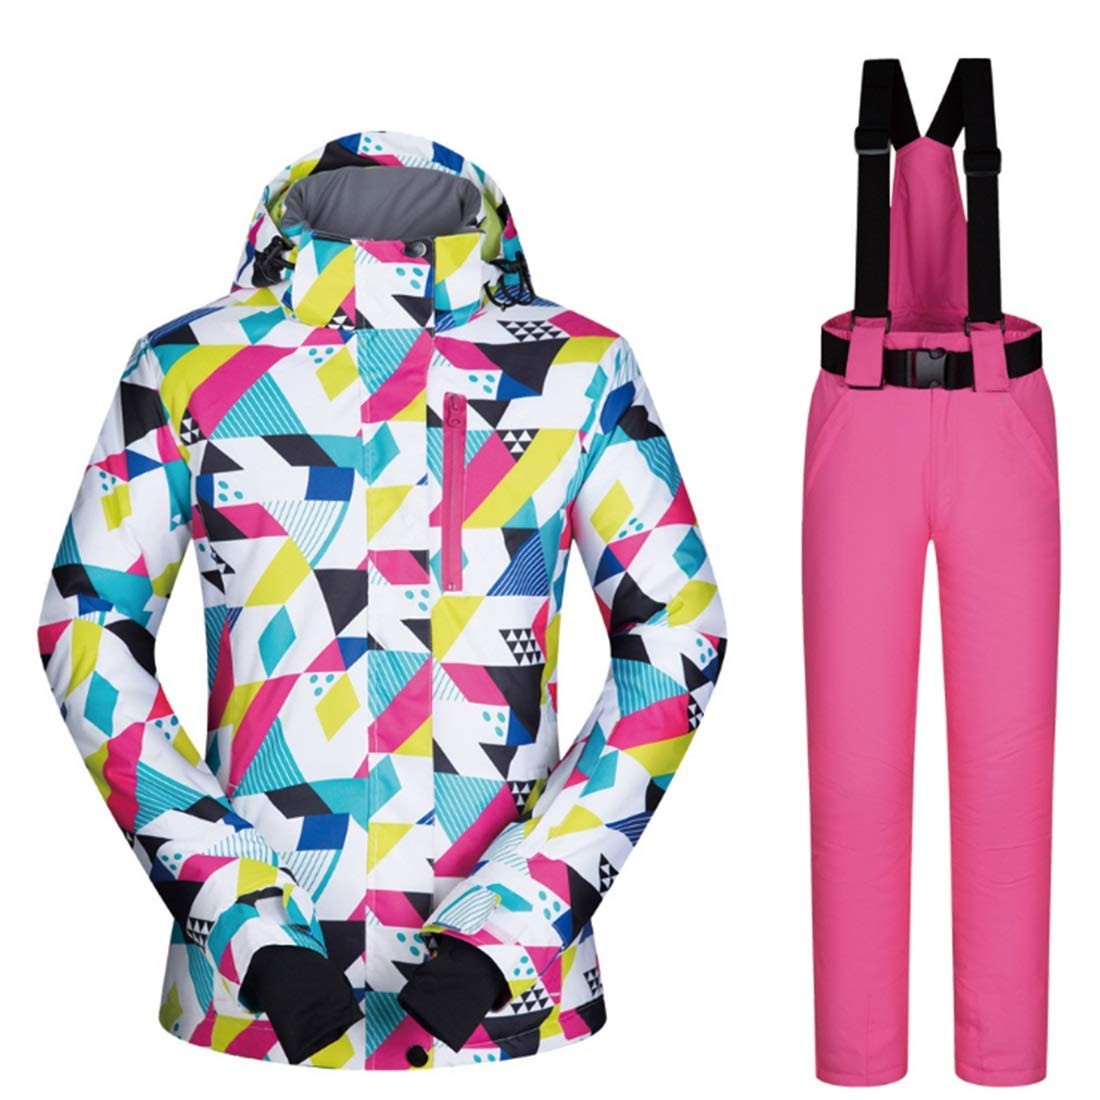 1 XIAMEND Windproof & Waterproof Women Jacket, Outdoor Sport Winter Girl Coat Dress Ski Jacket (color   02, Size   M)